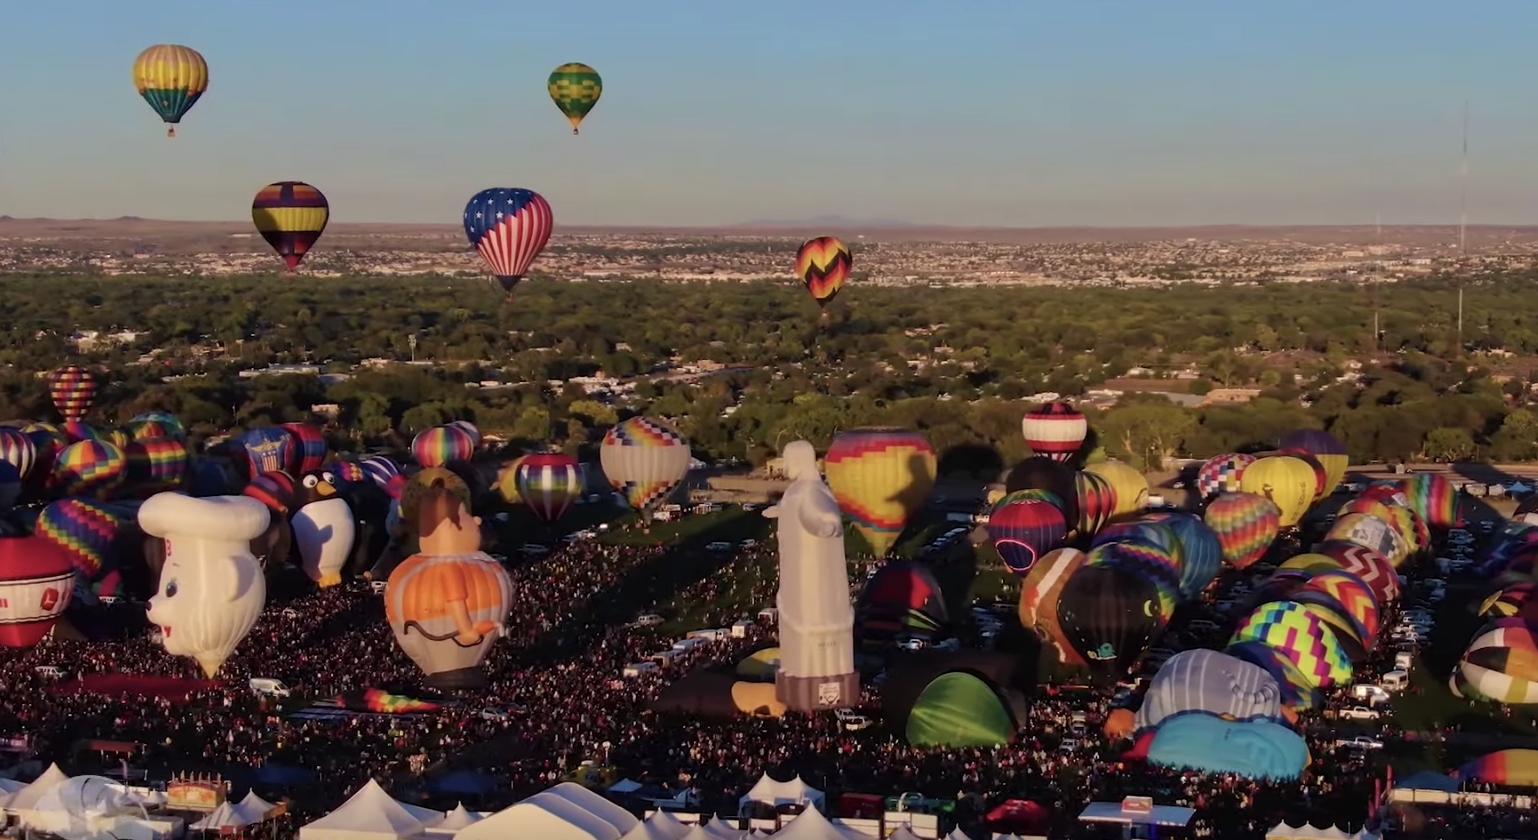 A Drone Captures Gorgeous Footage Of Albuquerque's Hot Air Balloon Festival - Digg